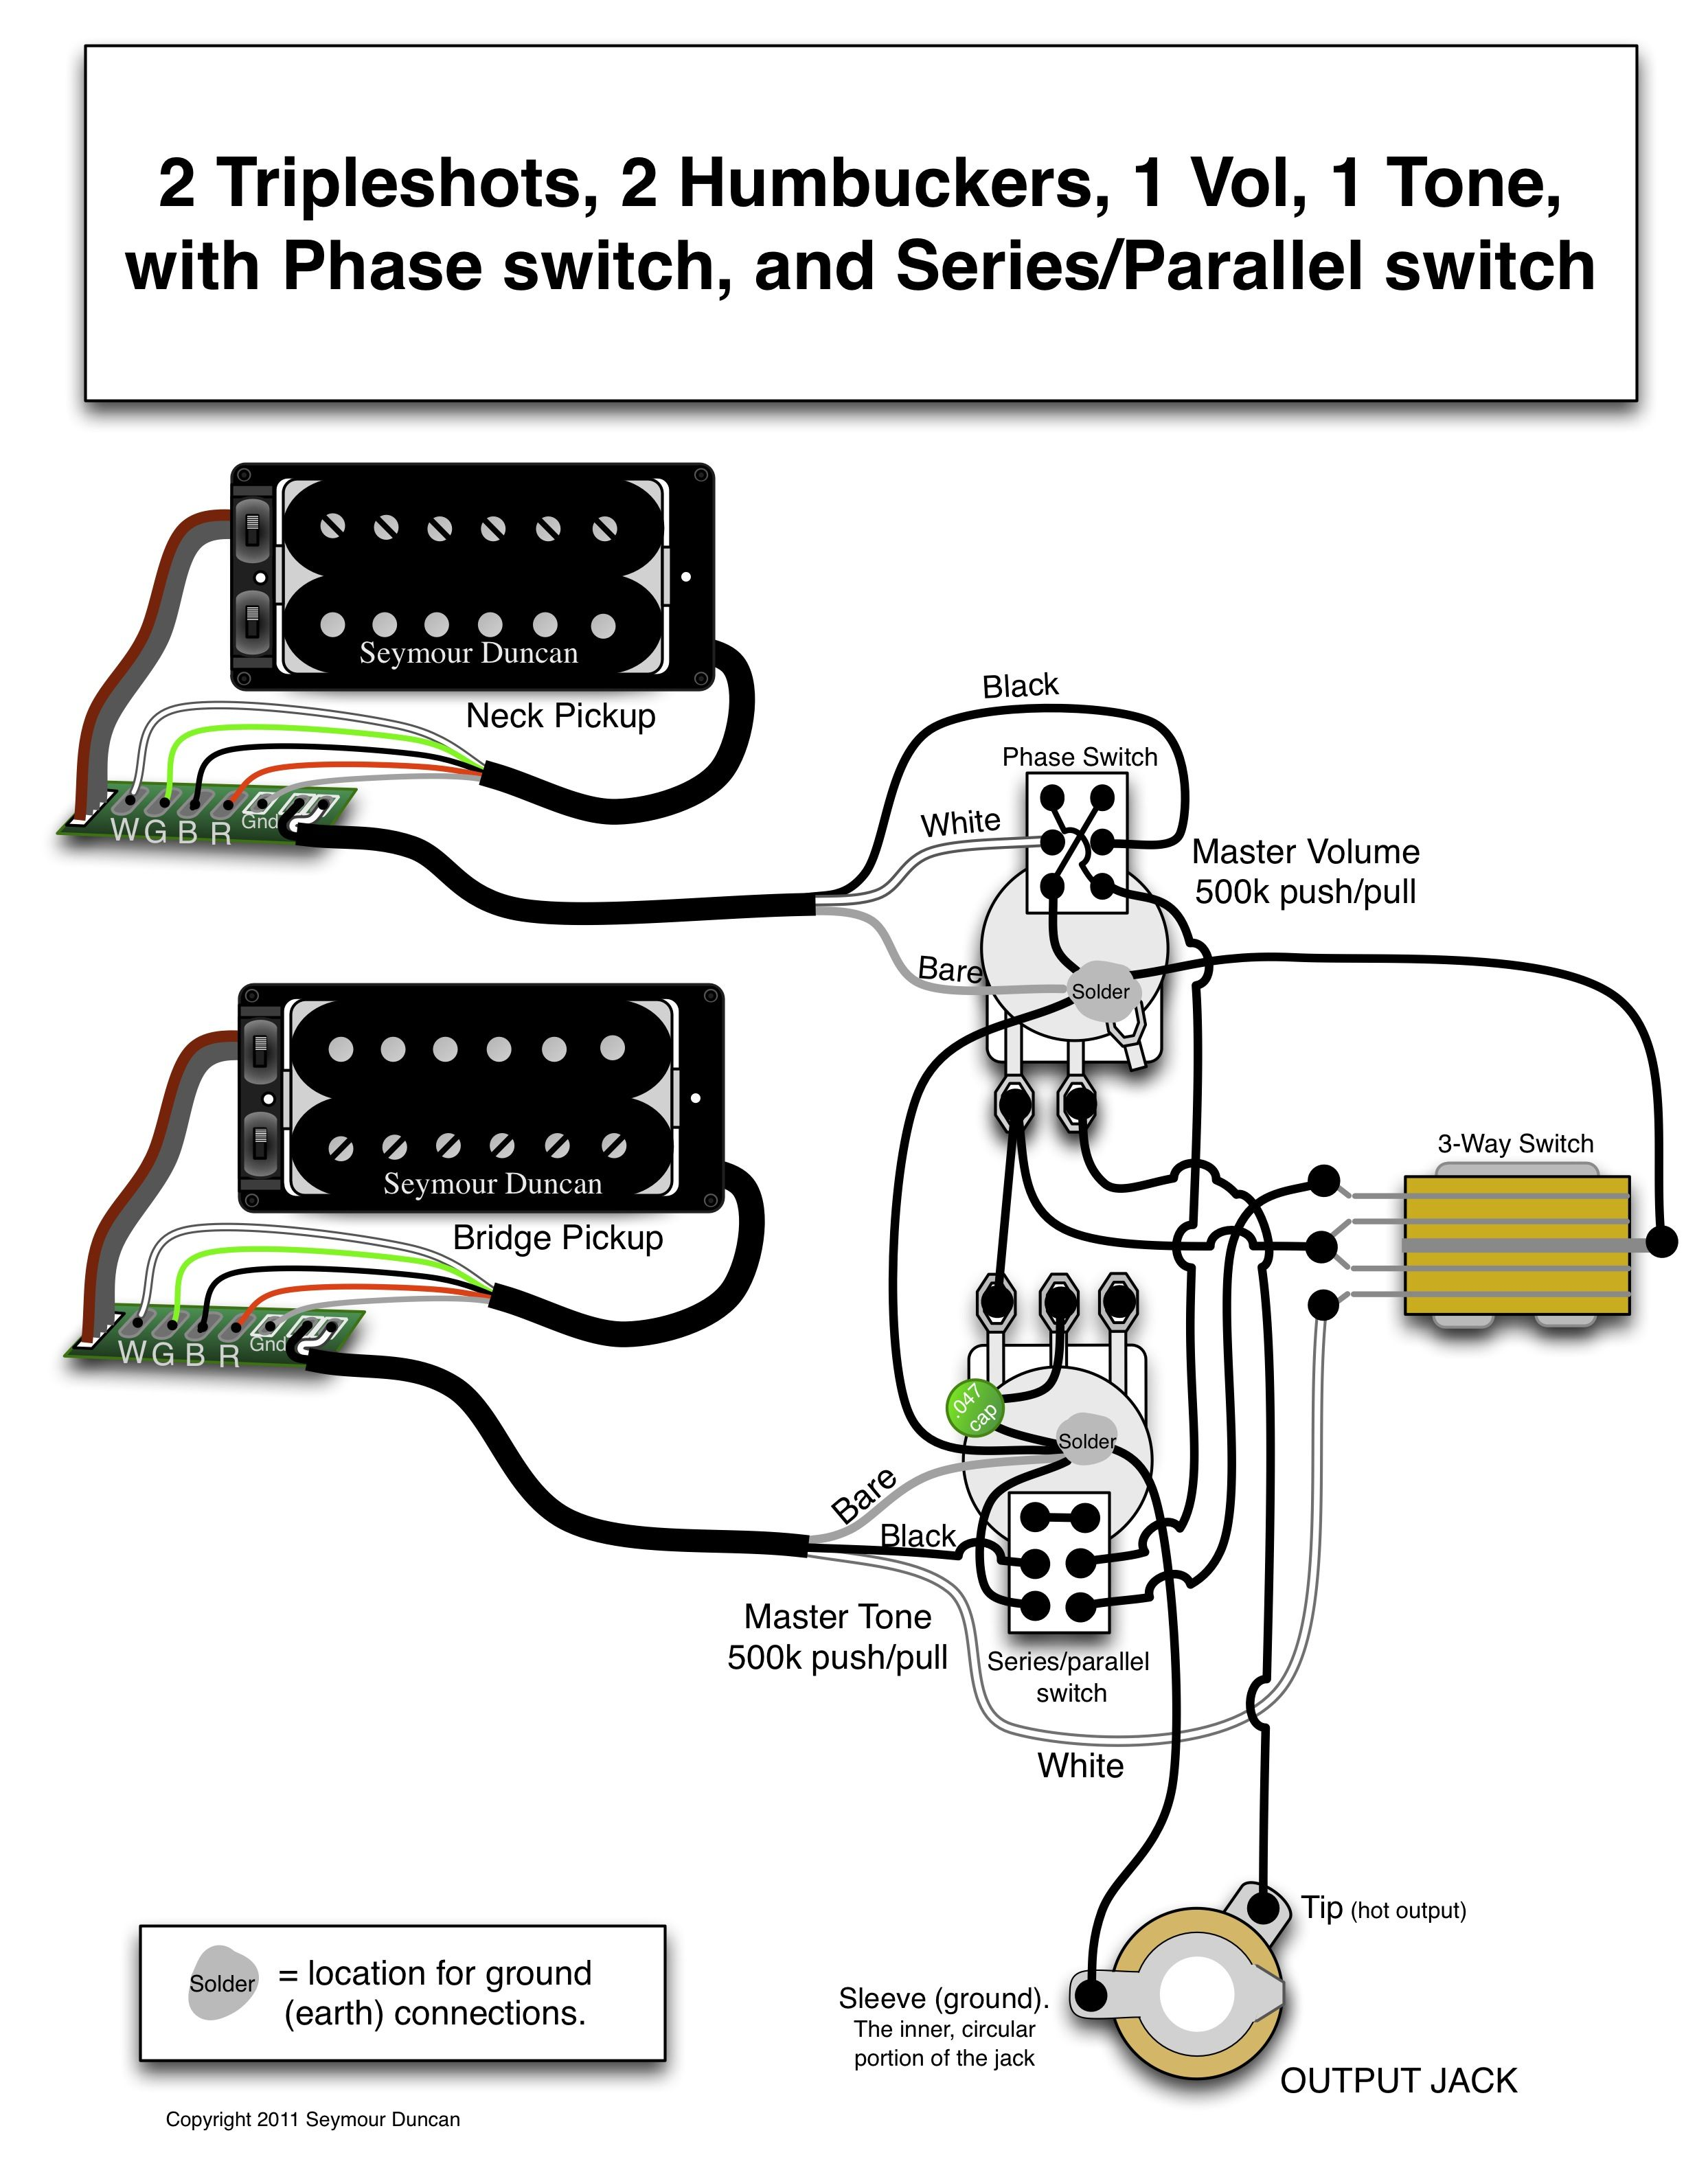 11e7a4ce932088841833425d14ebd2ea seymour duncan wiring diagram 2 triple shots, 2 humbuckers, 1  at nearapp.co